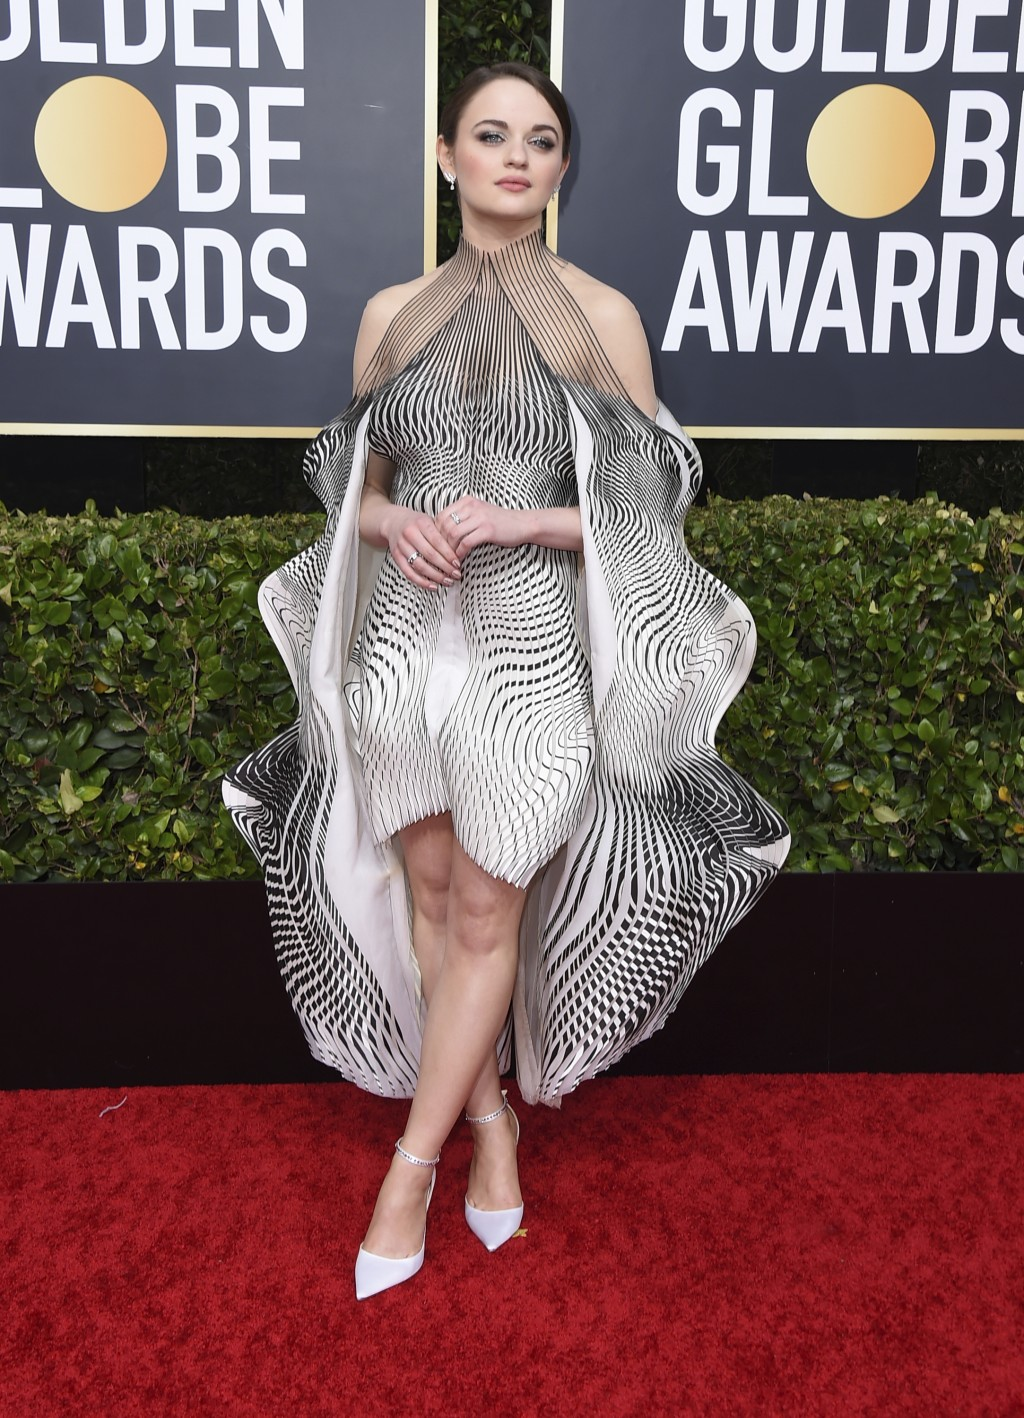 Joey King arrives at the 77th annual Golden Globe Awards at the Beverly Hilton Hotel on Sunday, Jan. 5, 2020, in Beverly Hills, Calif. (Photo by Jorda...